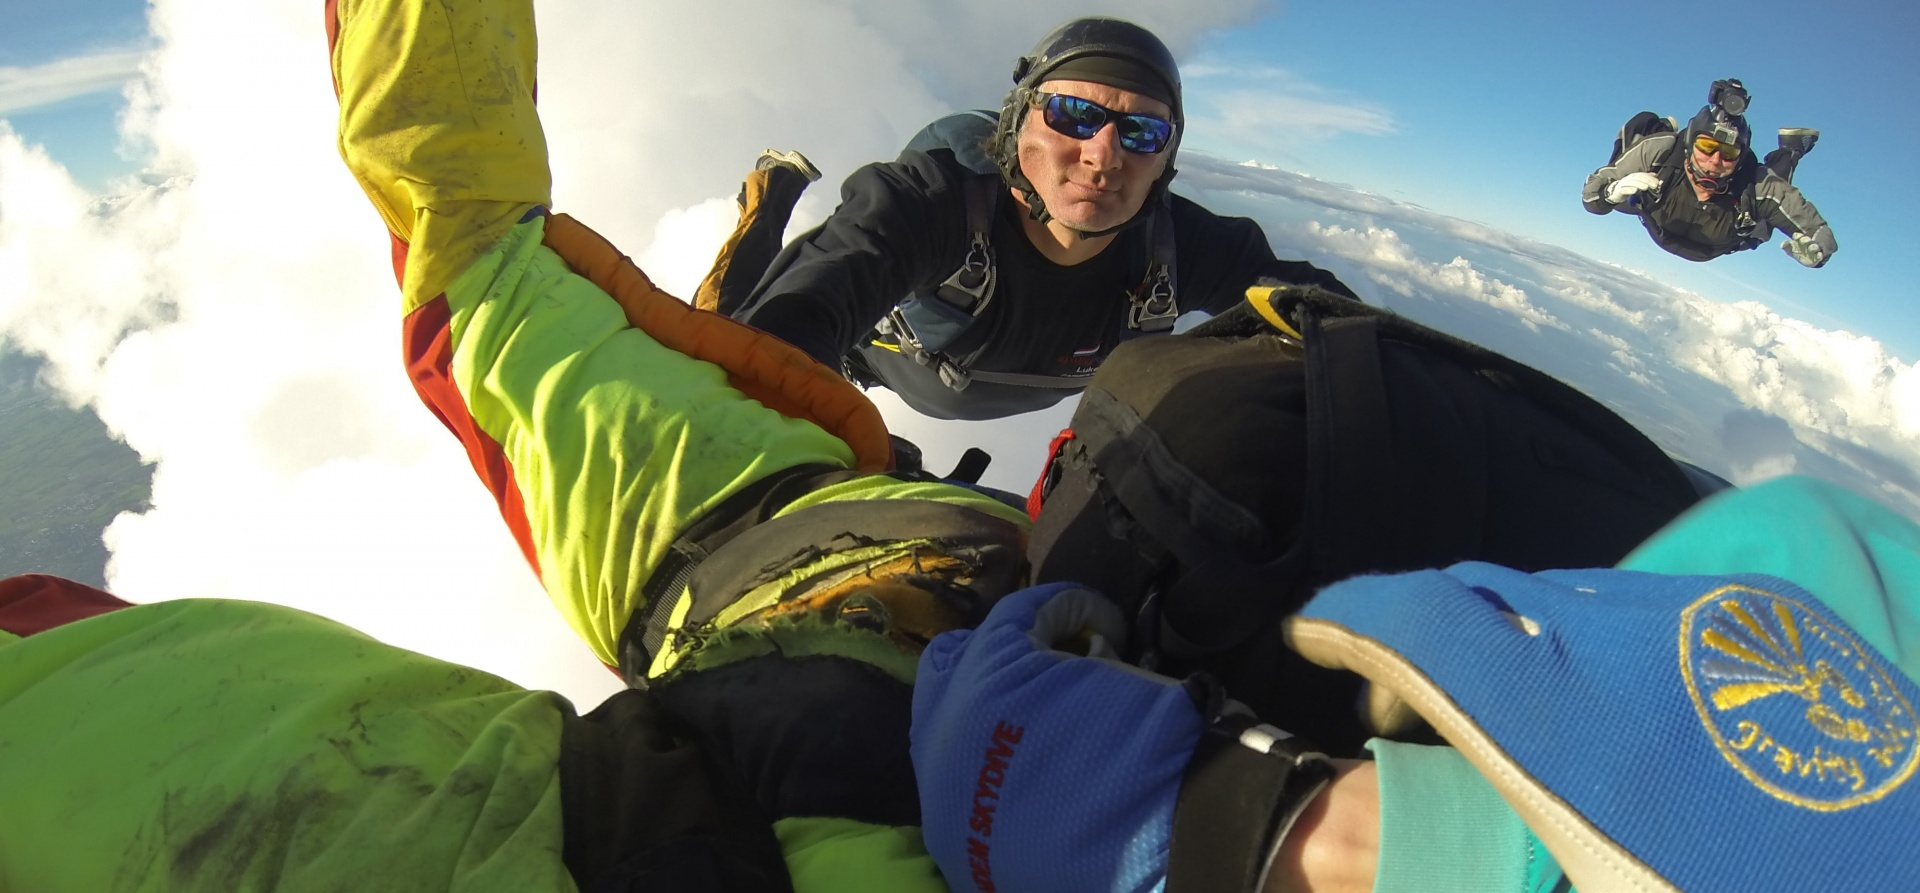 Skydiving Course UK - AFF Level 1-2